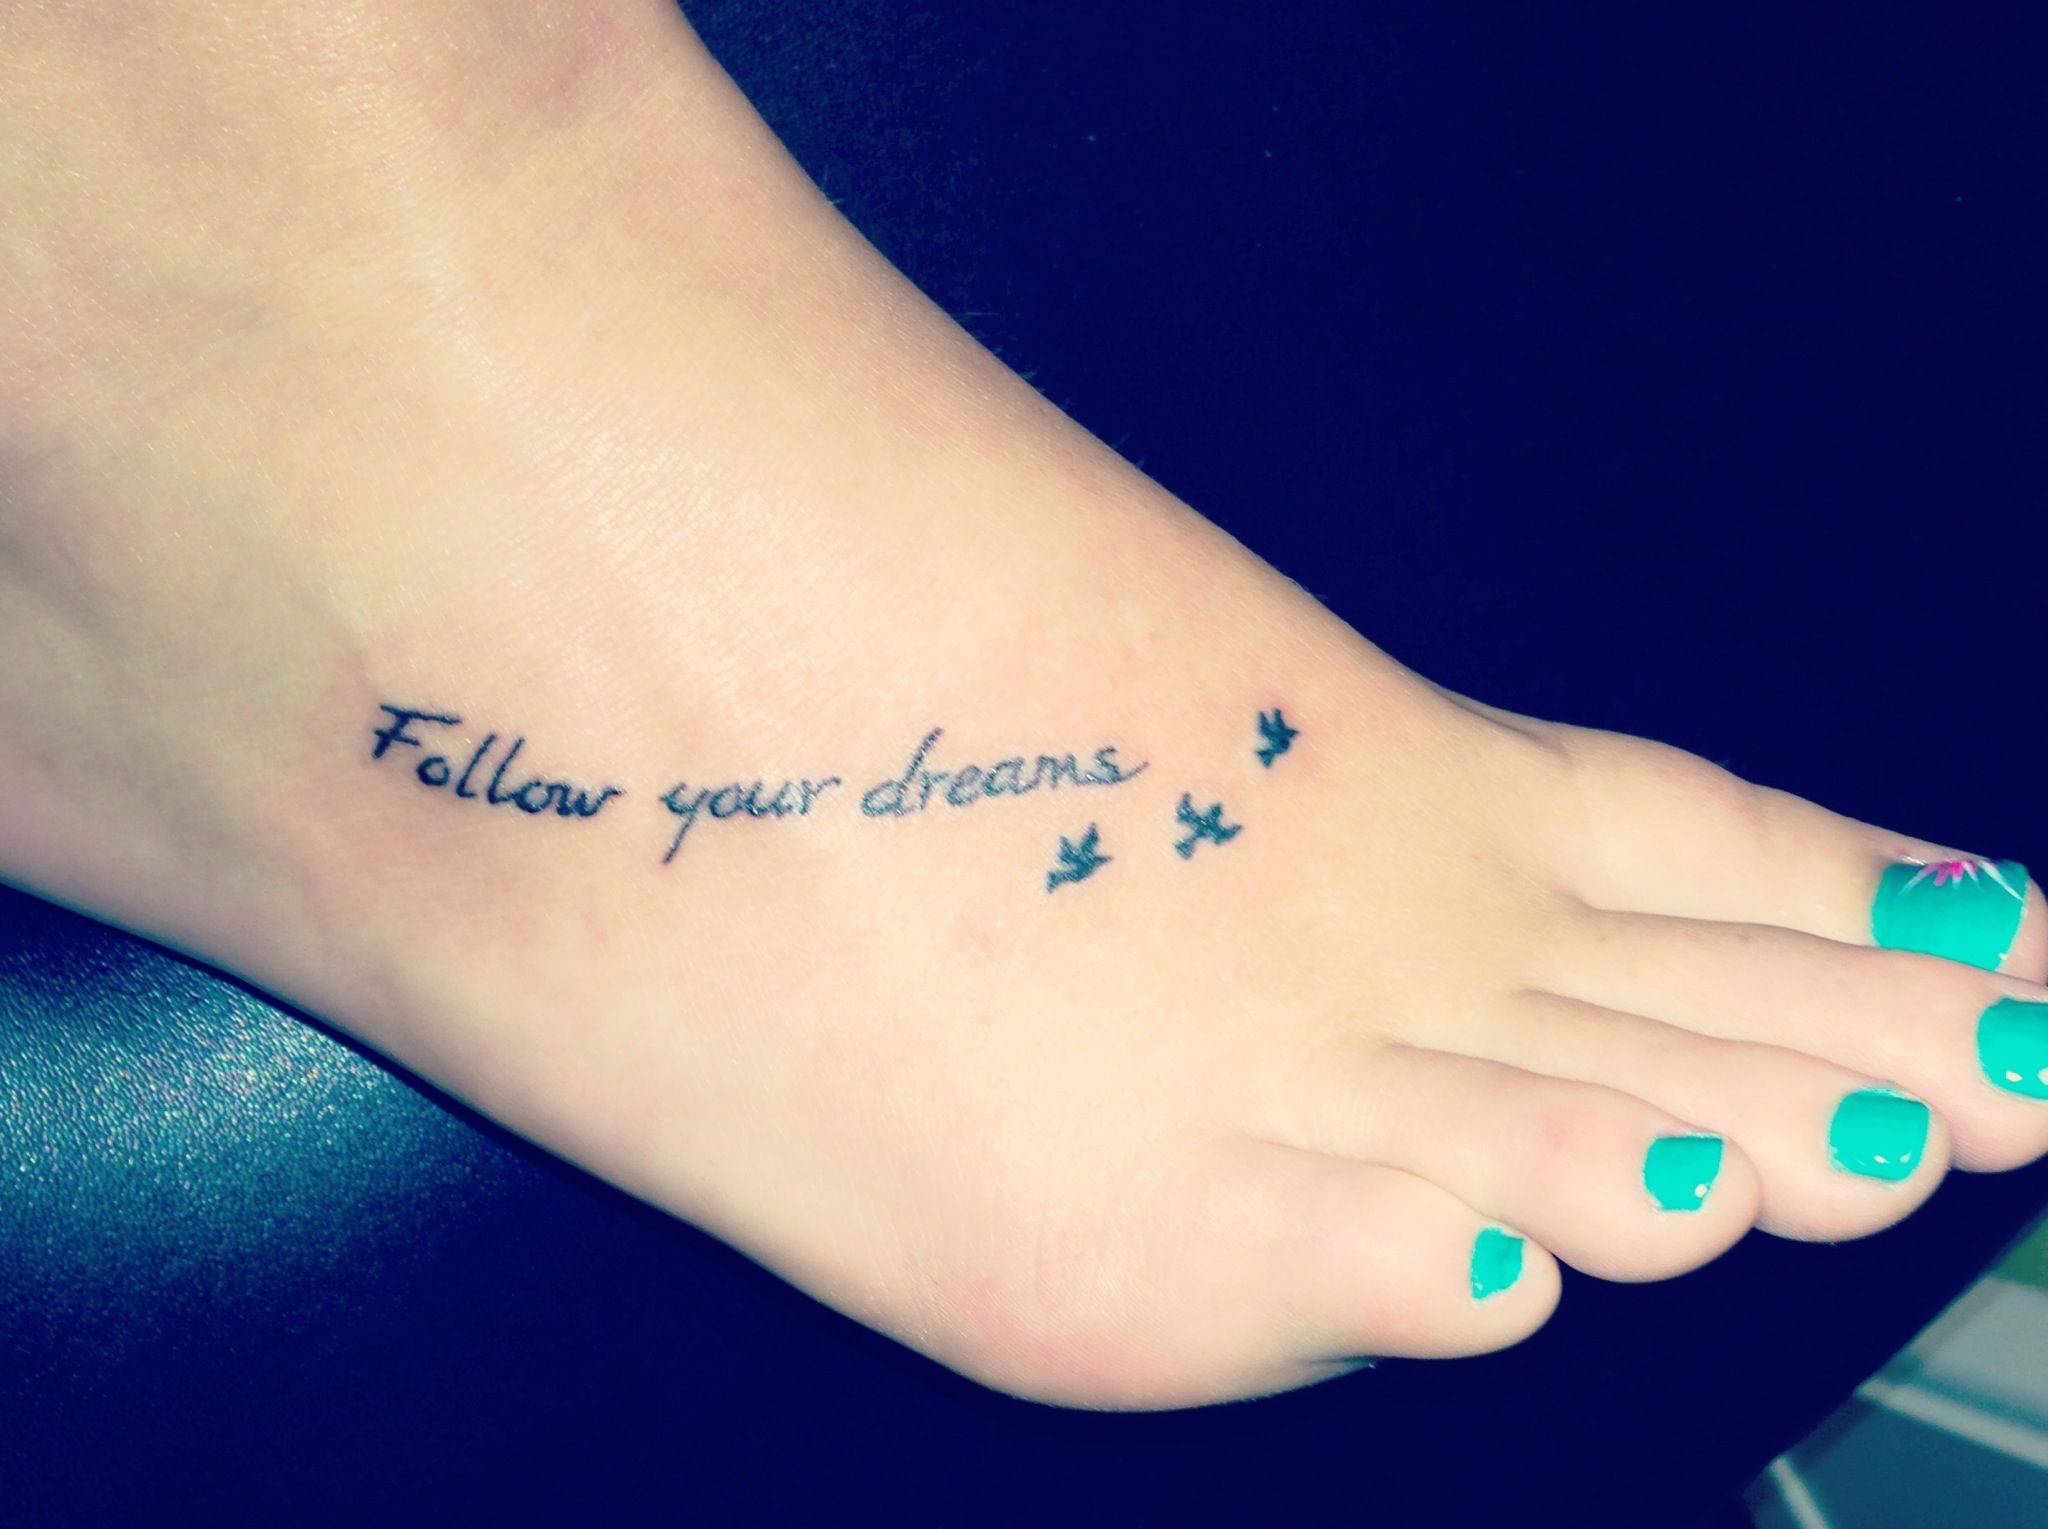 Tattoo Ideas For Women Quotes On Foot